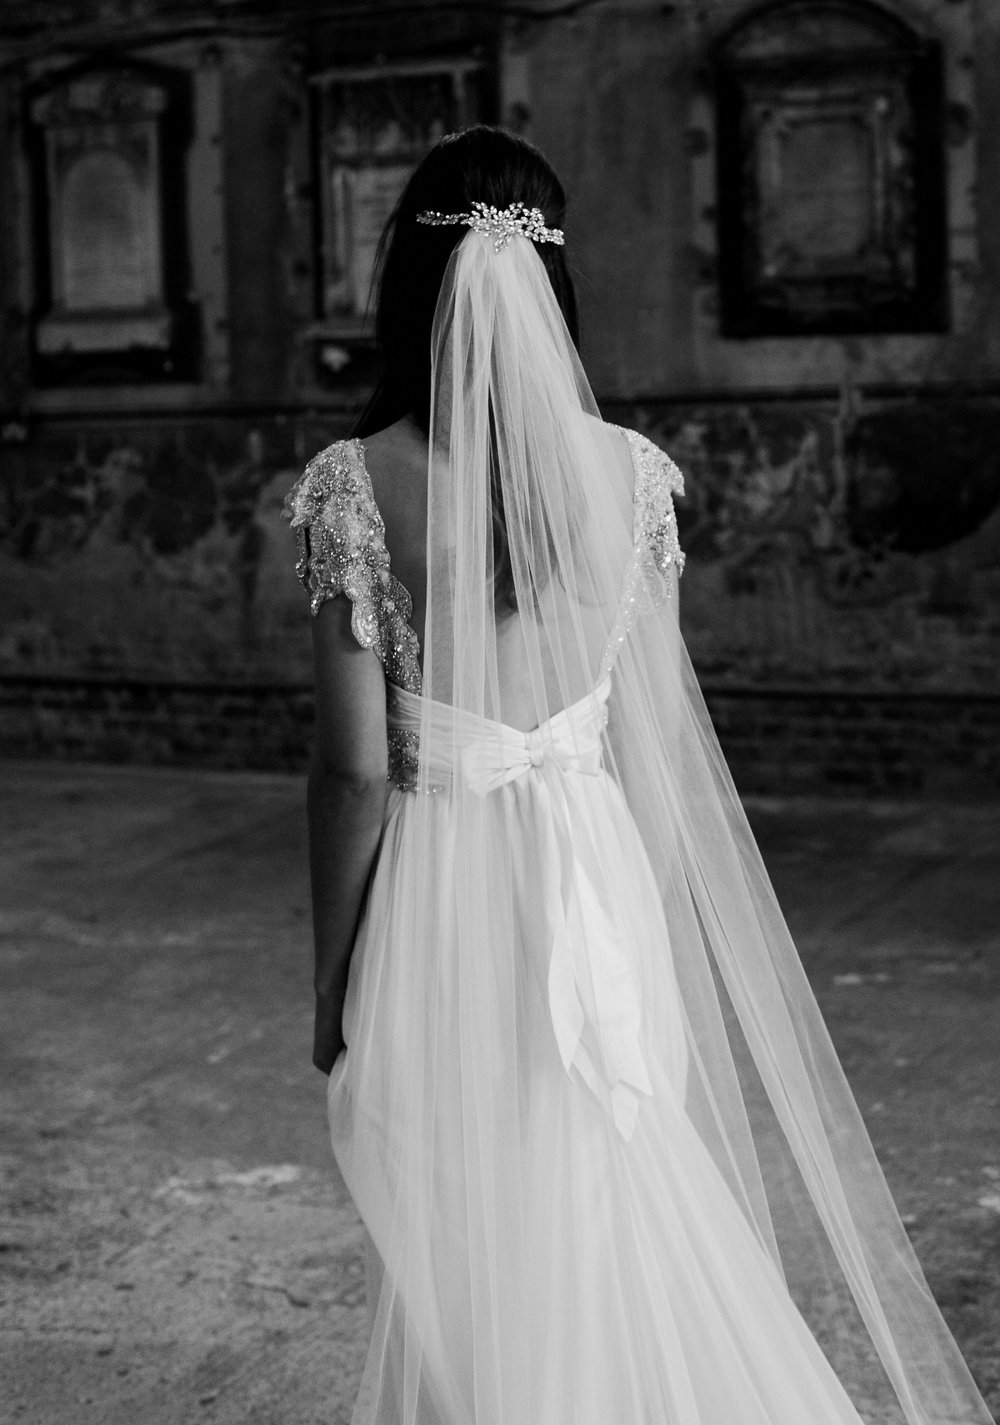 4. Can I still wear a headpiece? - Yes! In fact most of our brides will choose to pair their veil with either a hand-beaded headpiece or a sparkly, embellished comb.Simply place your embellished comb or headpiece over the top of your veil.After the ceremony and photos, you can simply take the veil out, leaving your beautiful headpiece or comb in place for the reception!Pictured: The Alexandria Headpiece worn with the Ashantha Veil.